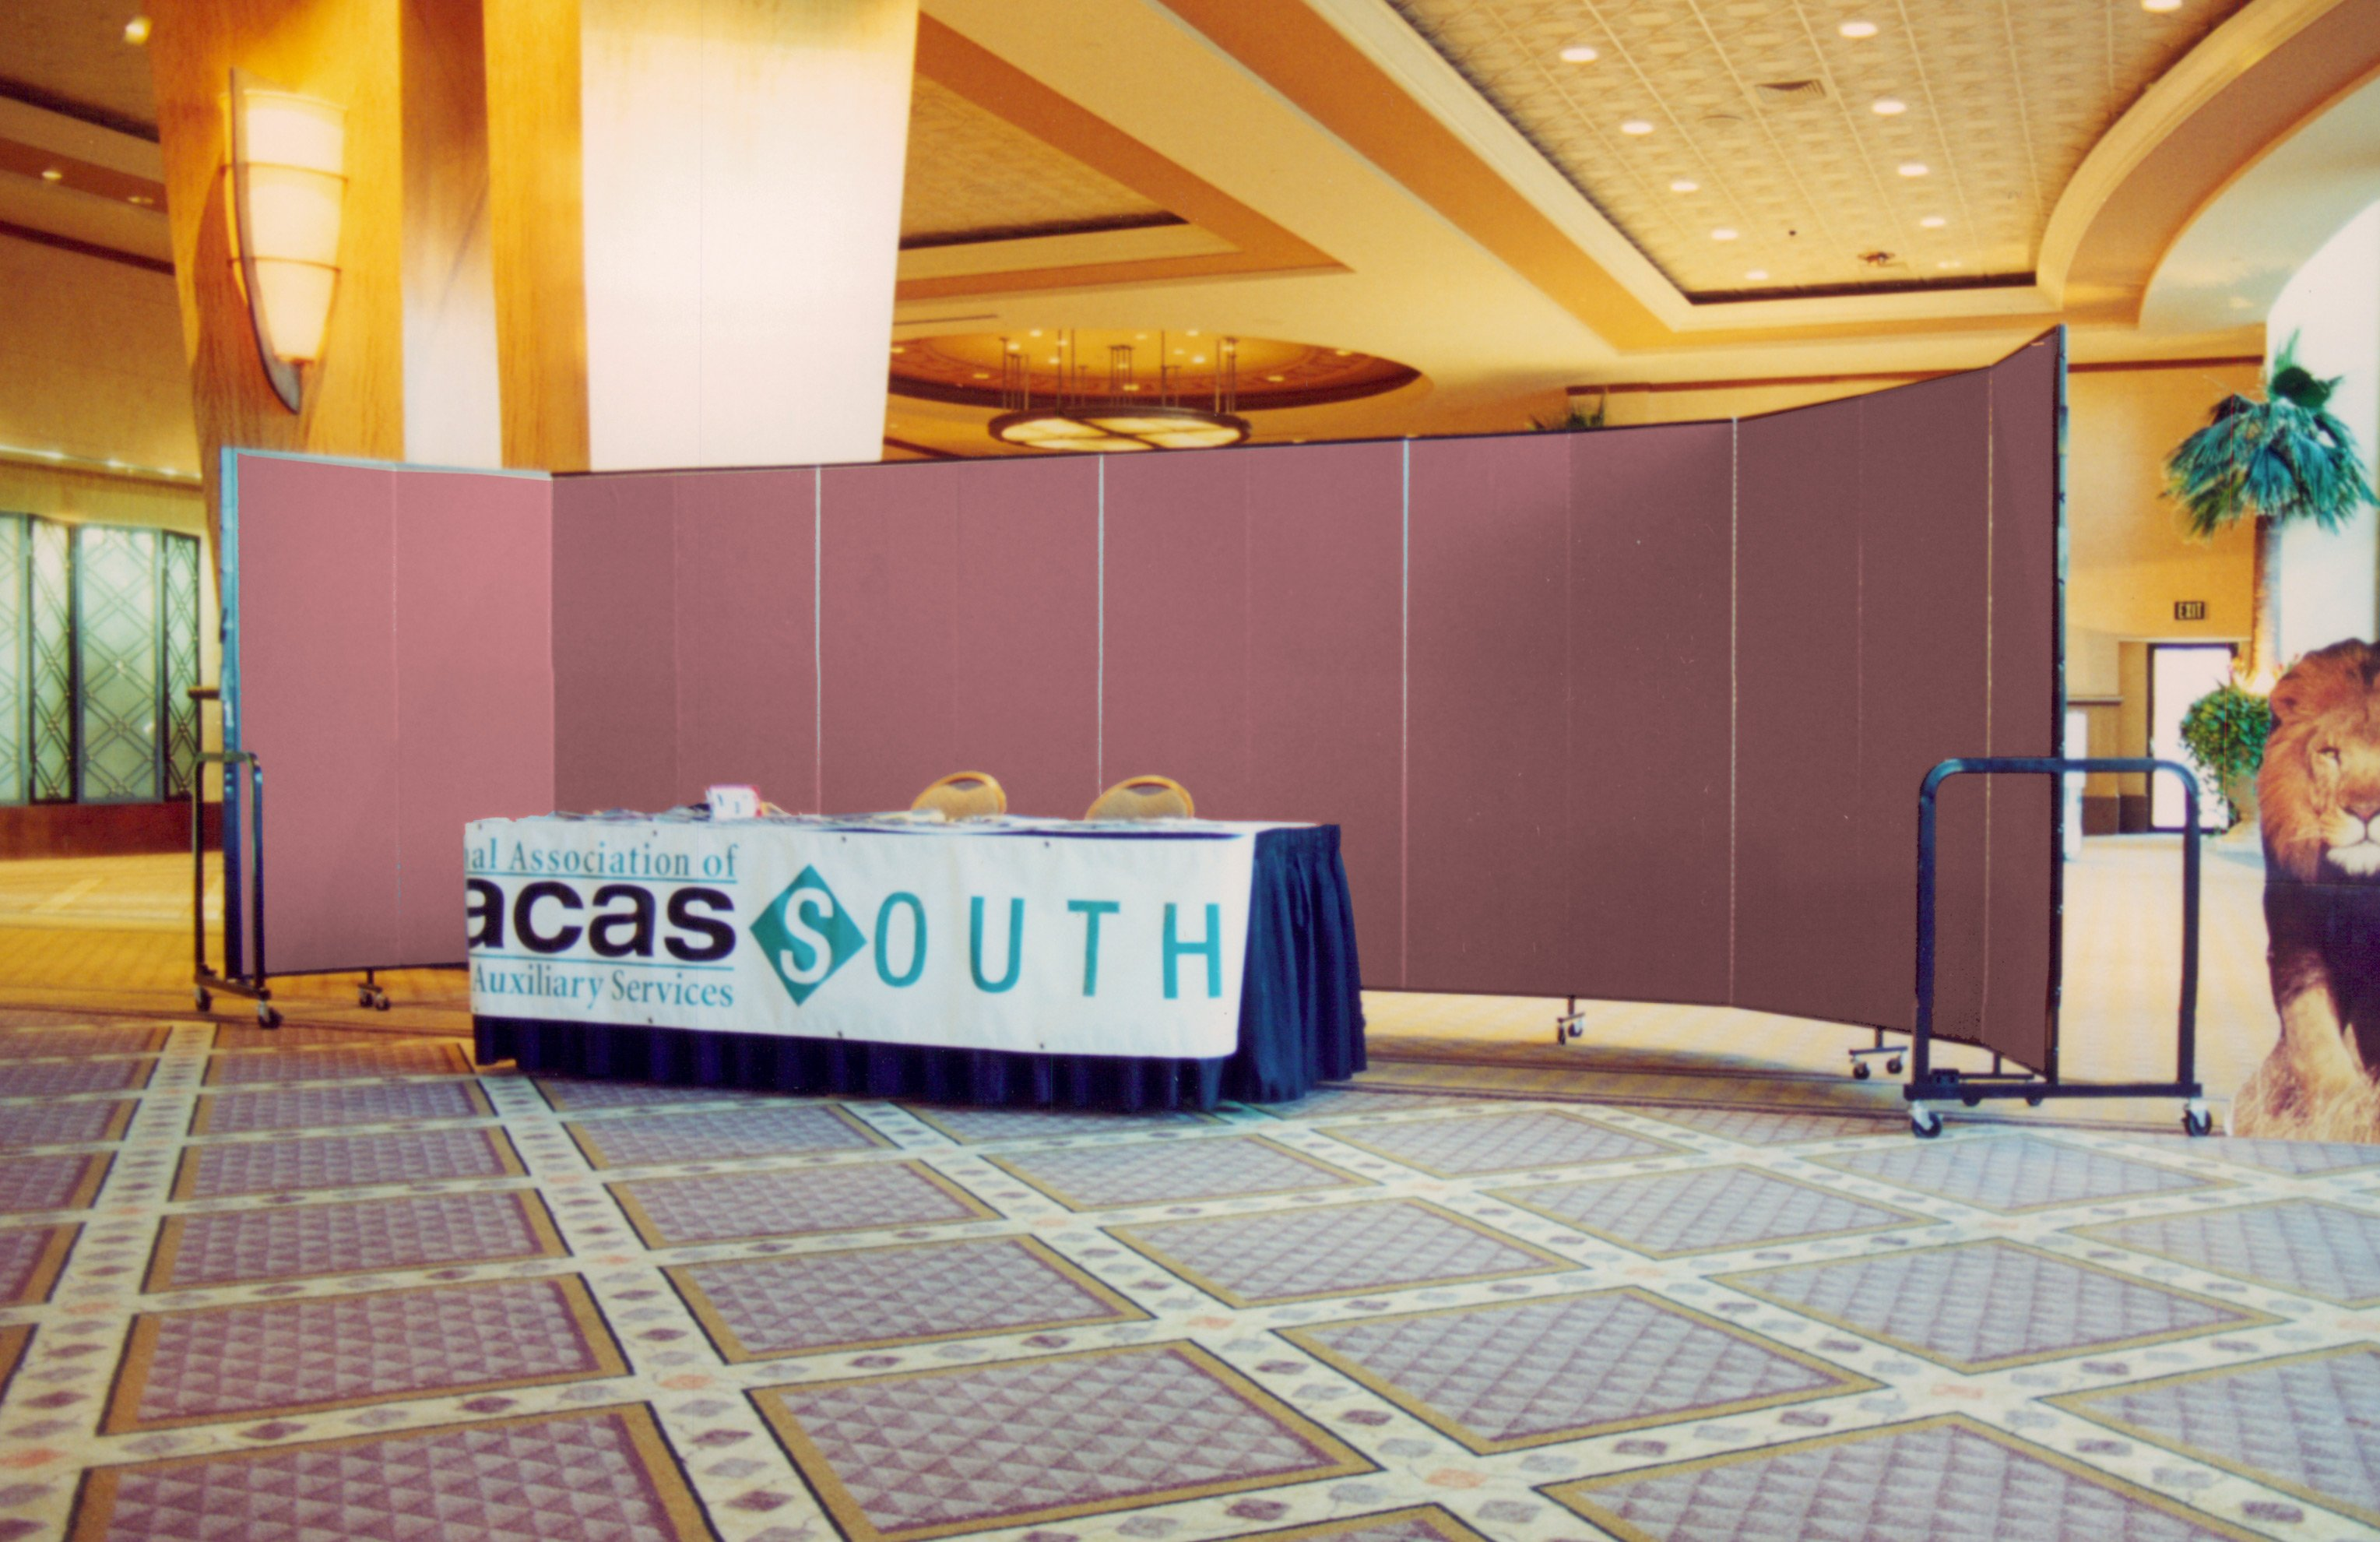 Freestanding Divider used as backdrop during conference registration